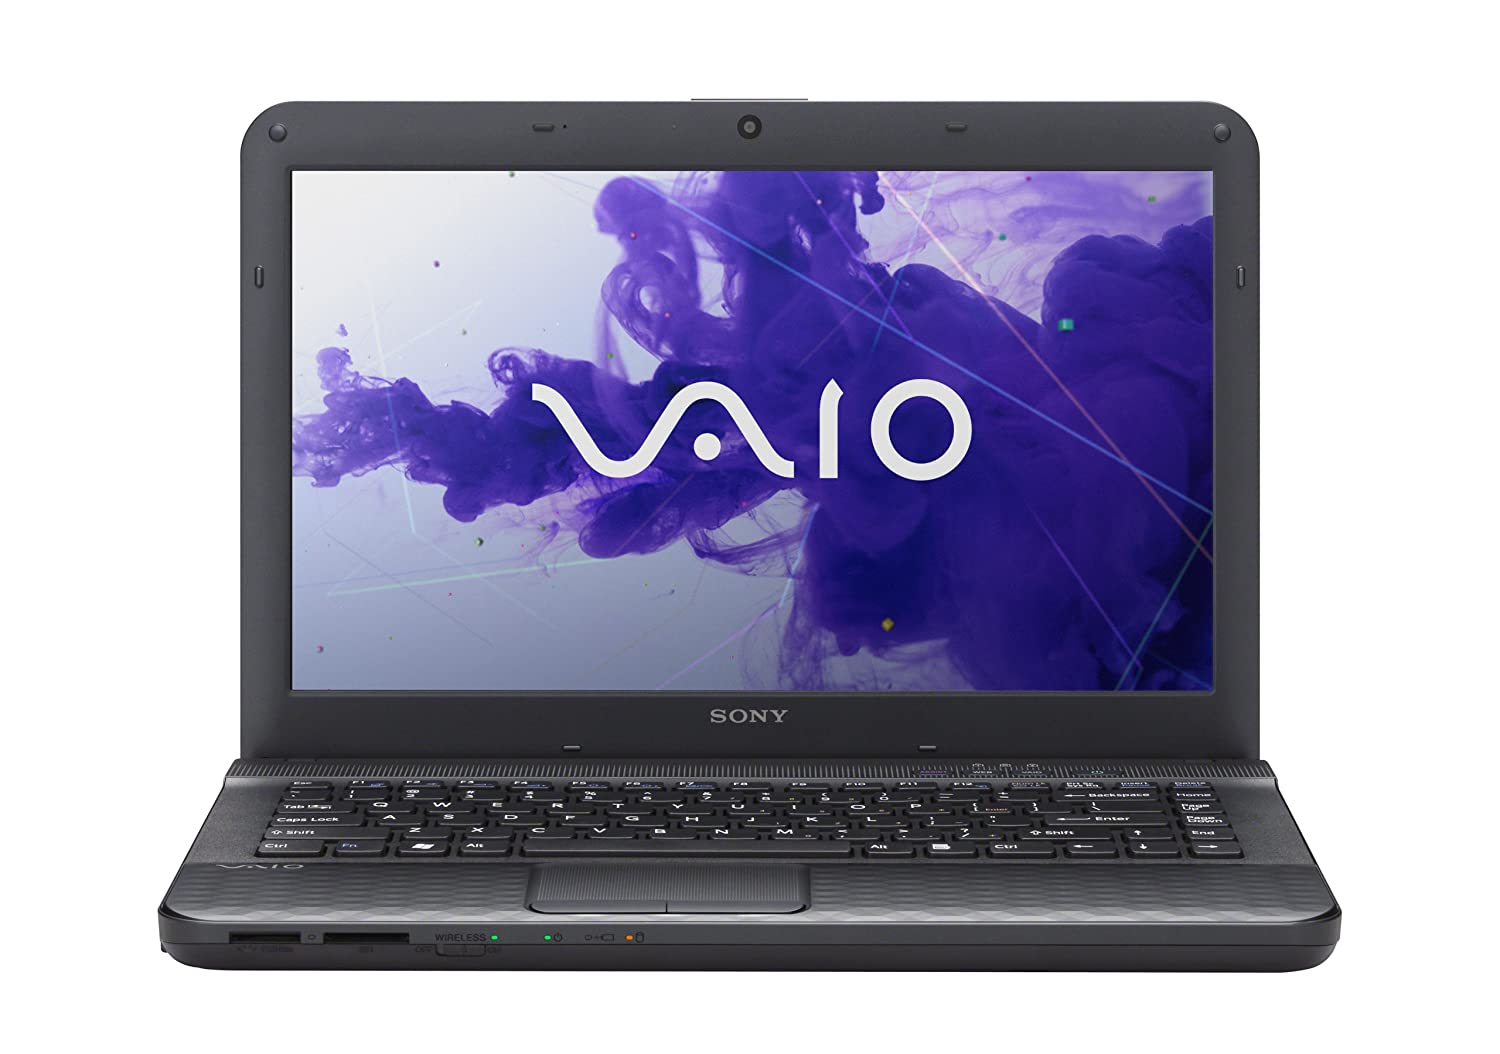 Sony Vaio VPCEG24FX/B Drivers for Windows 10